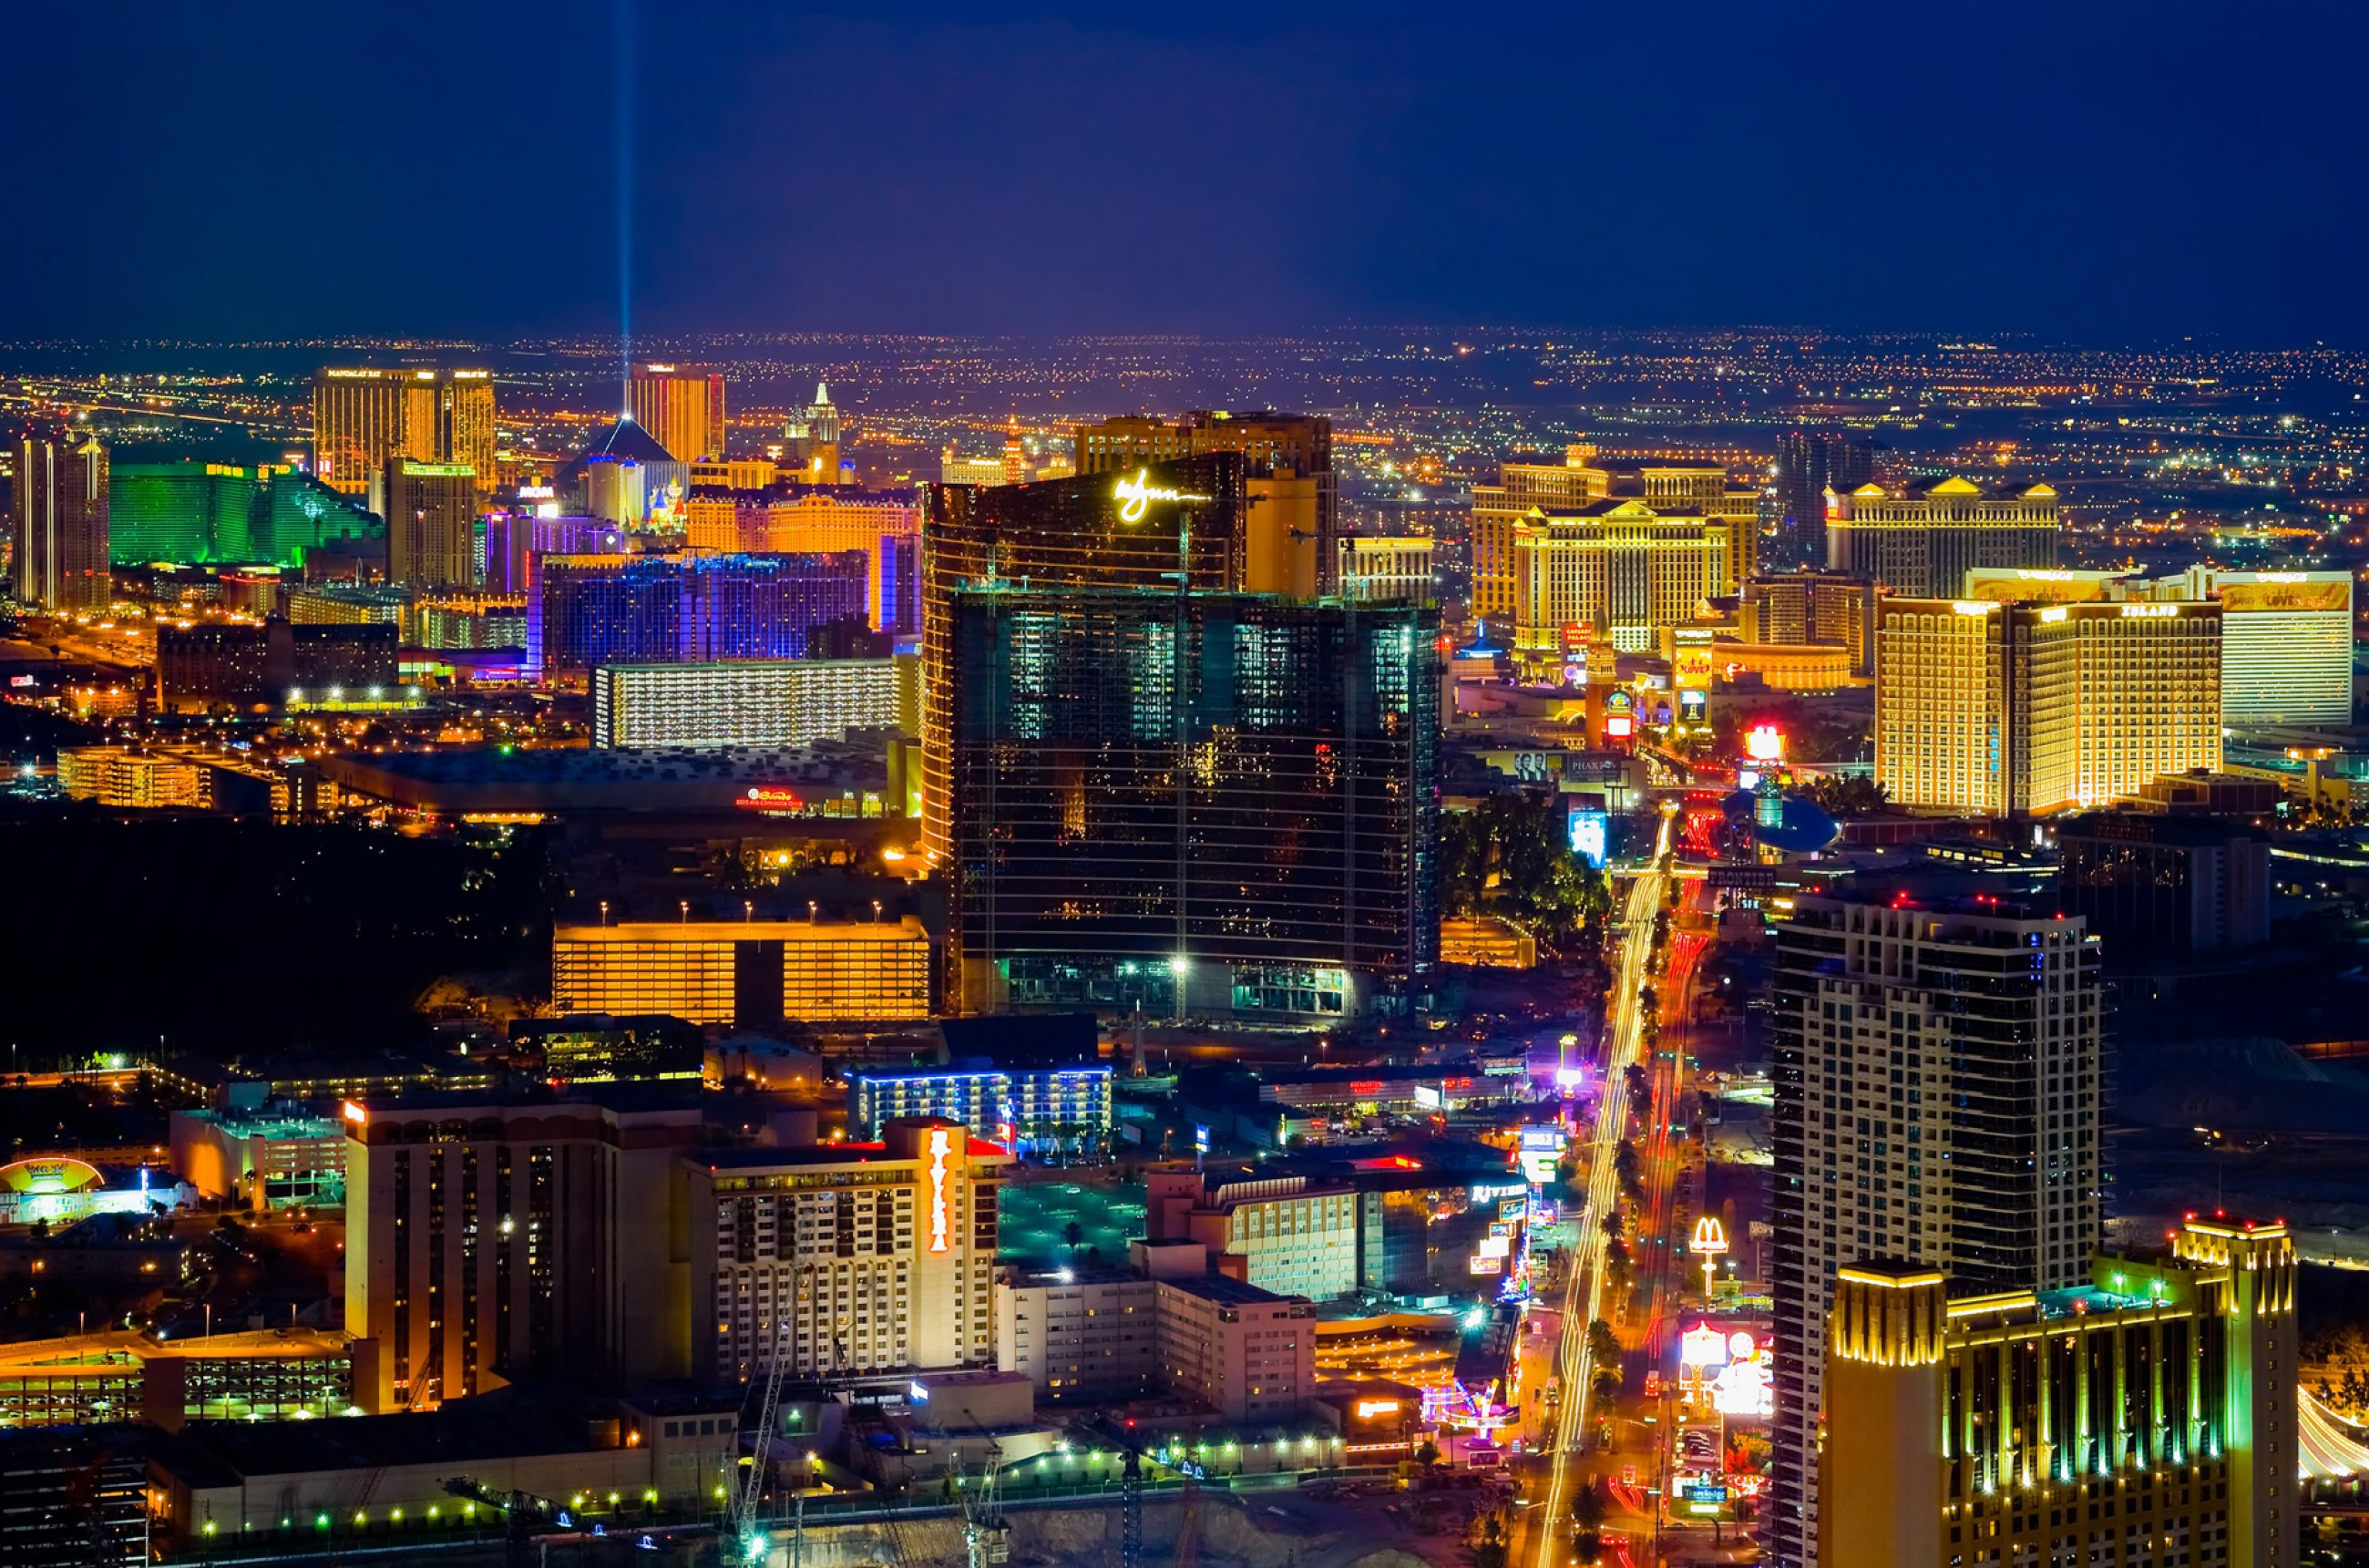 https://bubo.sk/uploads/galleries/7370/lv-las-vegas-las-vegas-from-above-at-night.jpg